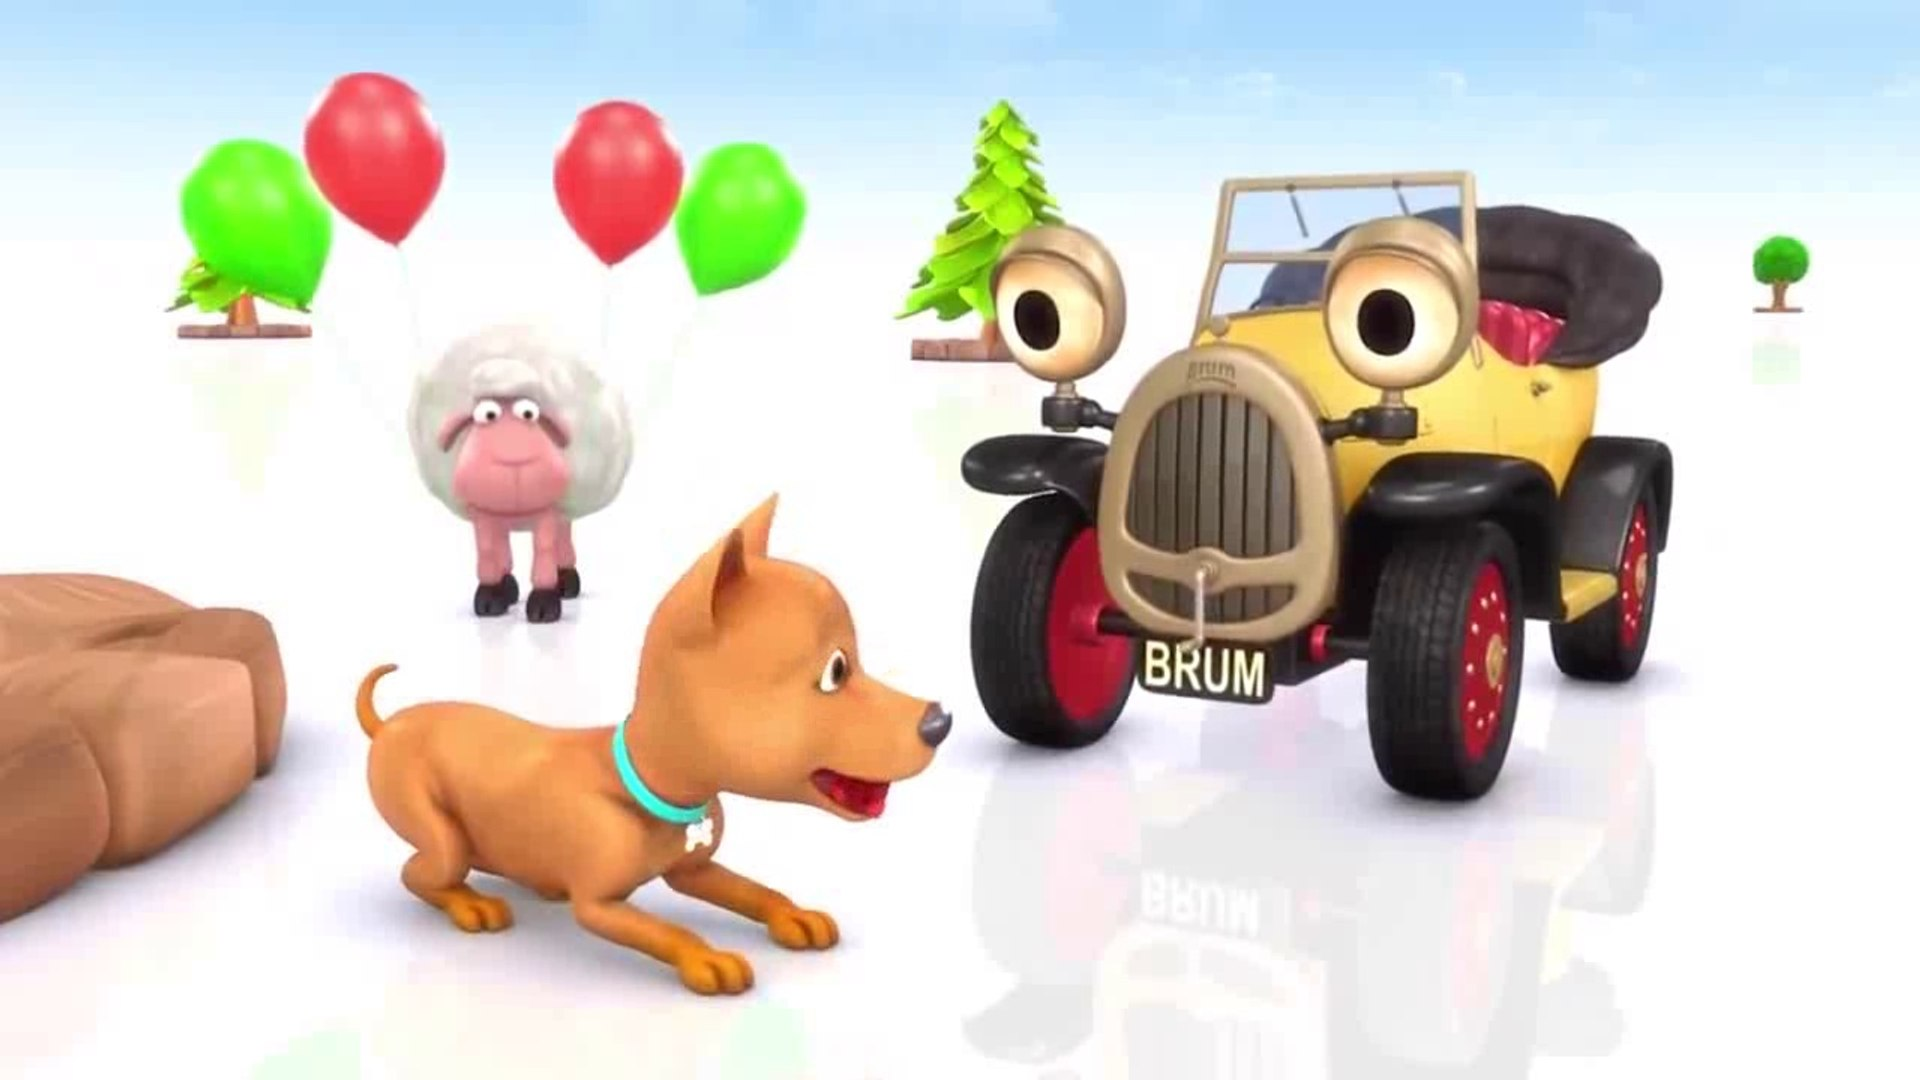 Brum Loves his Best Friends - KIDS SHOW FULL EPISODE - Cars and Trucks for kids